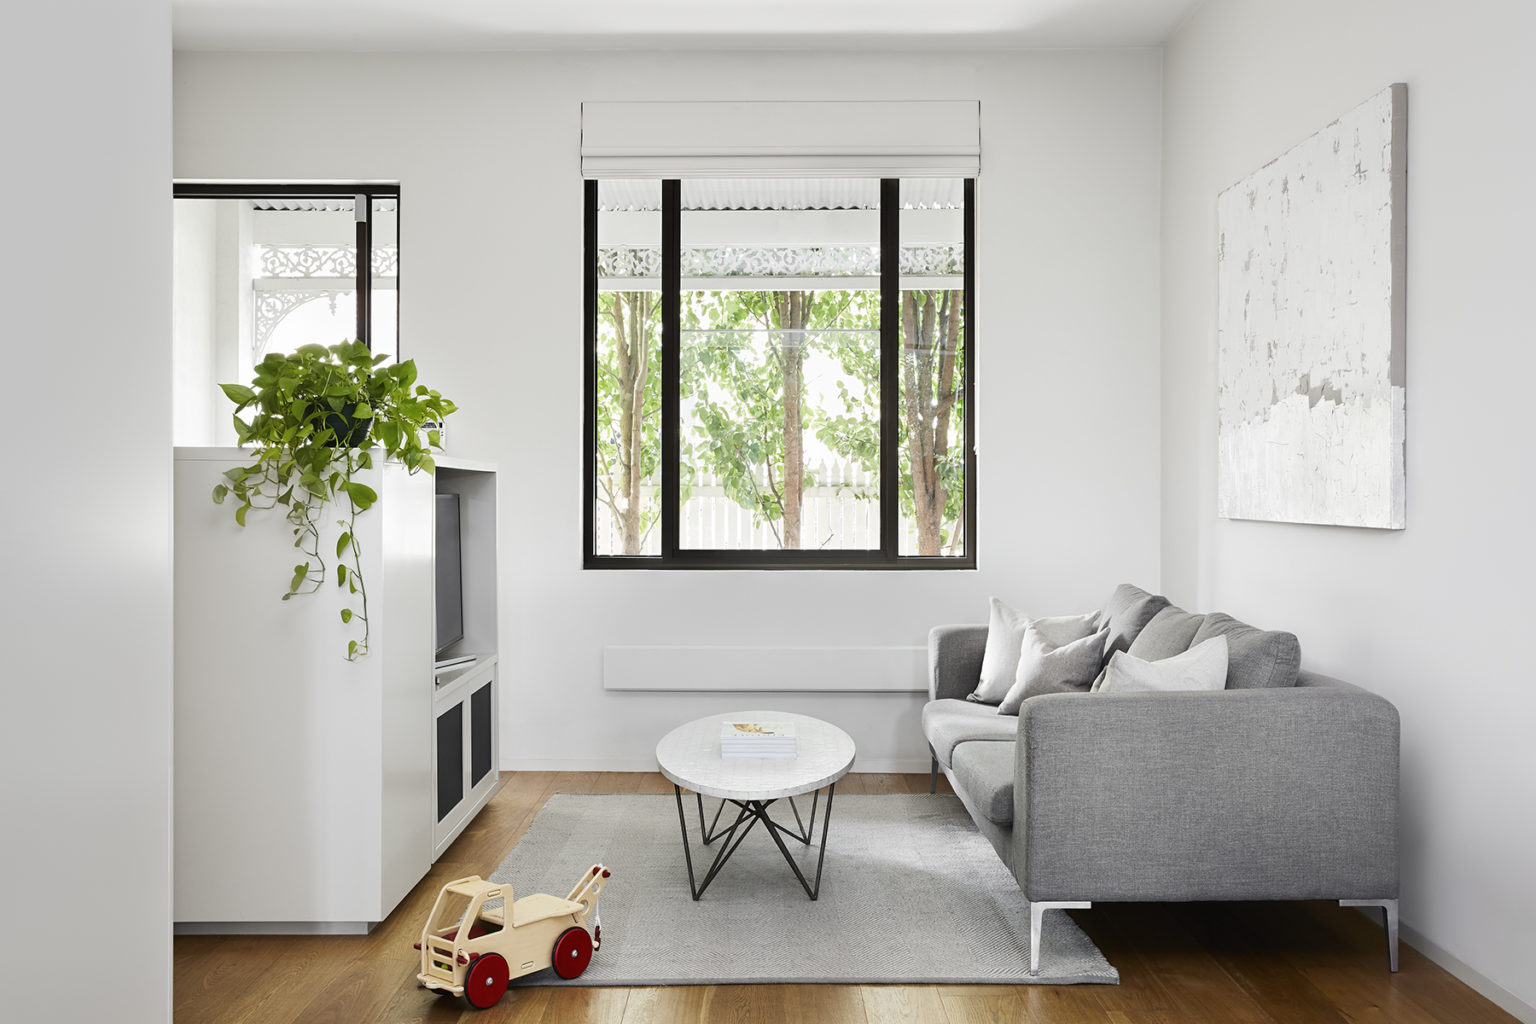 living room with windows and a grey couch and marble coffee table